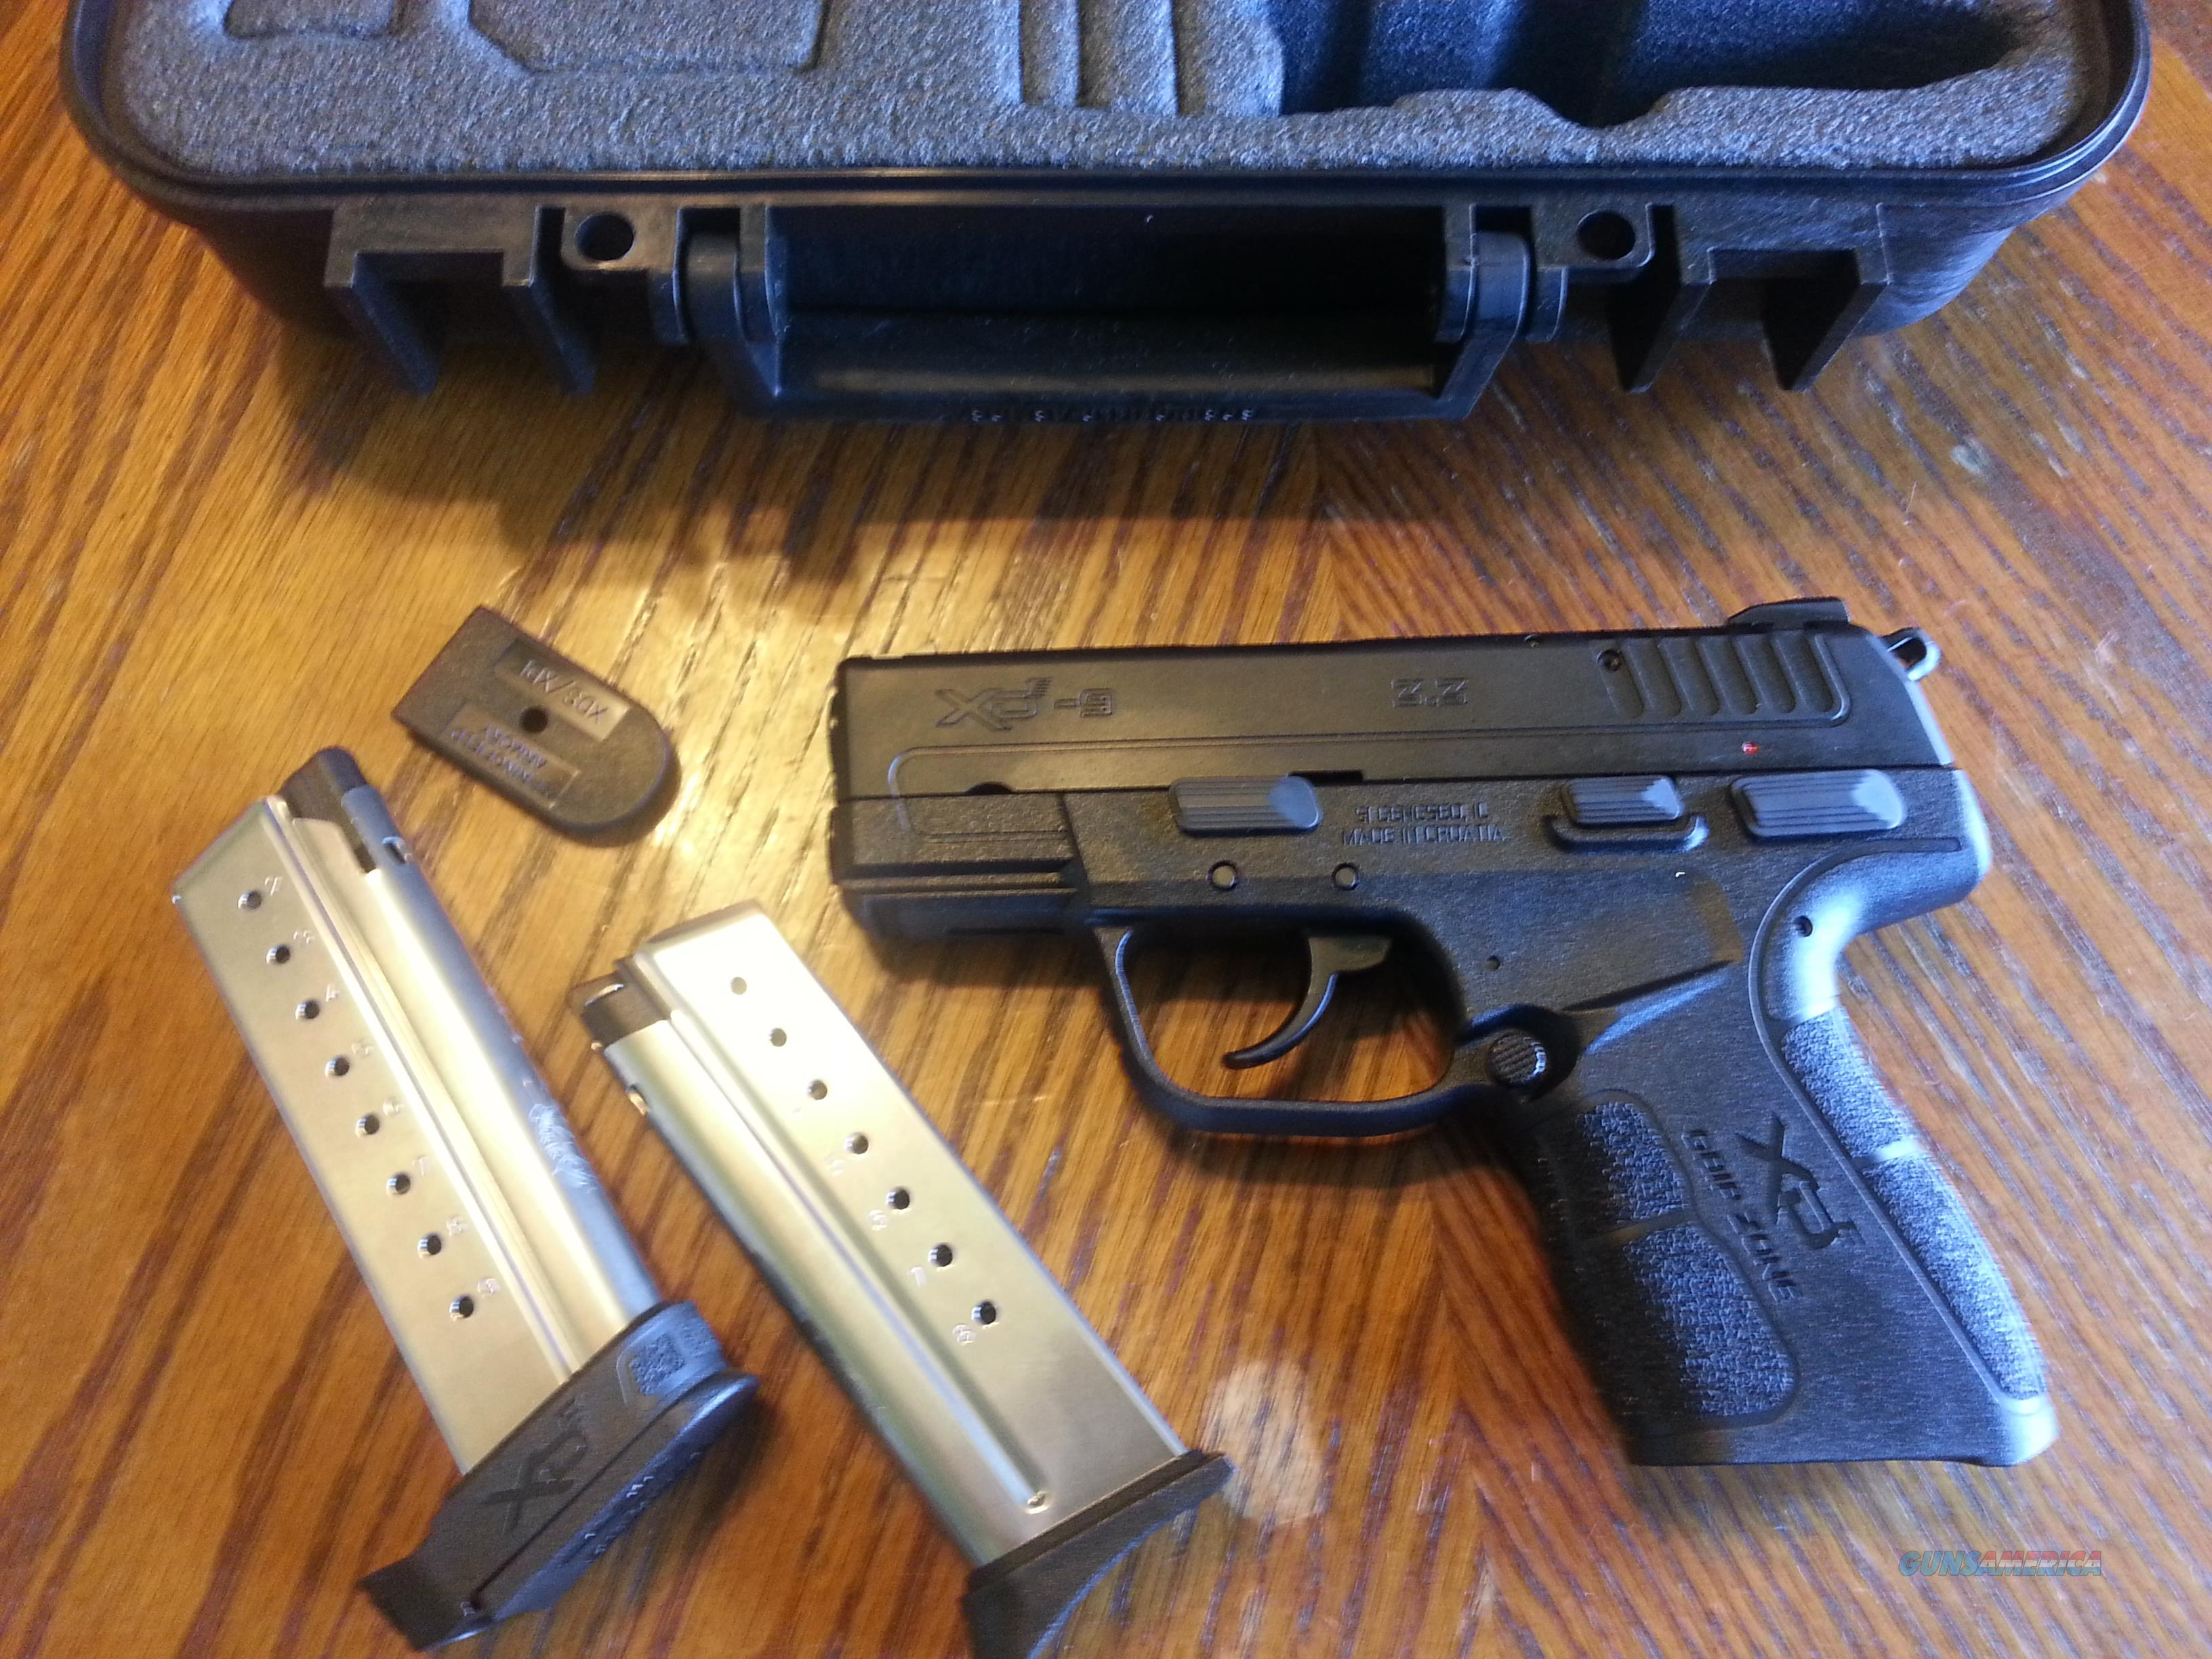 Springfield XD E 9mm New Model Hammer Fired D/A S/A Single Stack Concealed Carry NIB Fiber Optic Sight FREE LAYAWAY  Guns > Pistols > Springfield Armory Pistols > XD-E